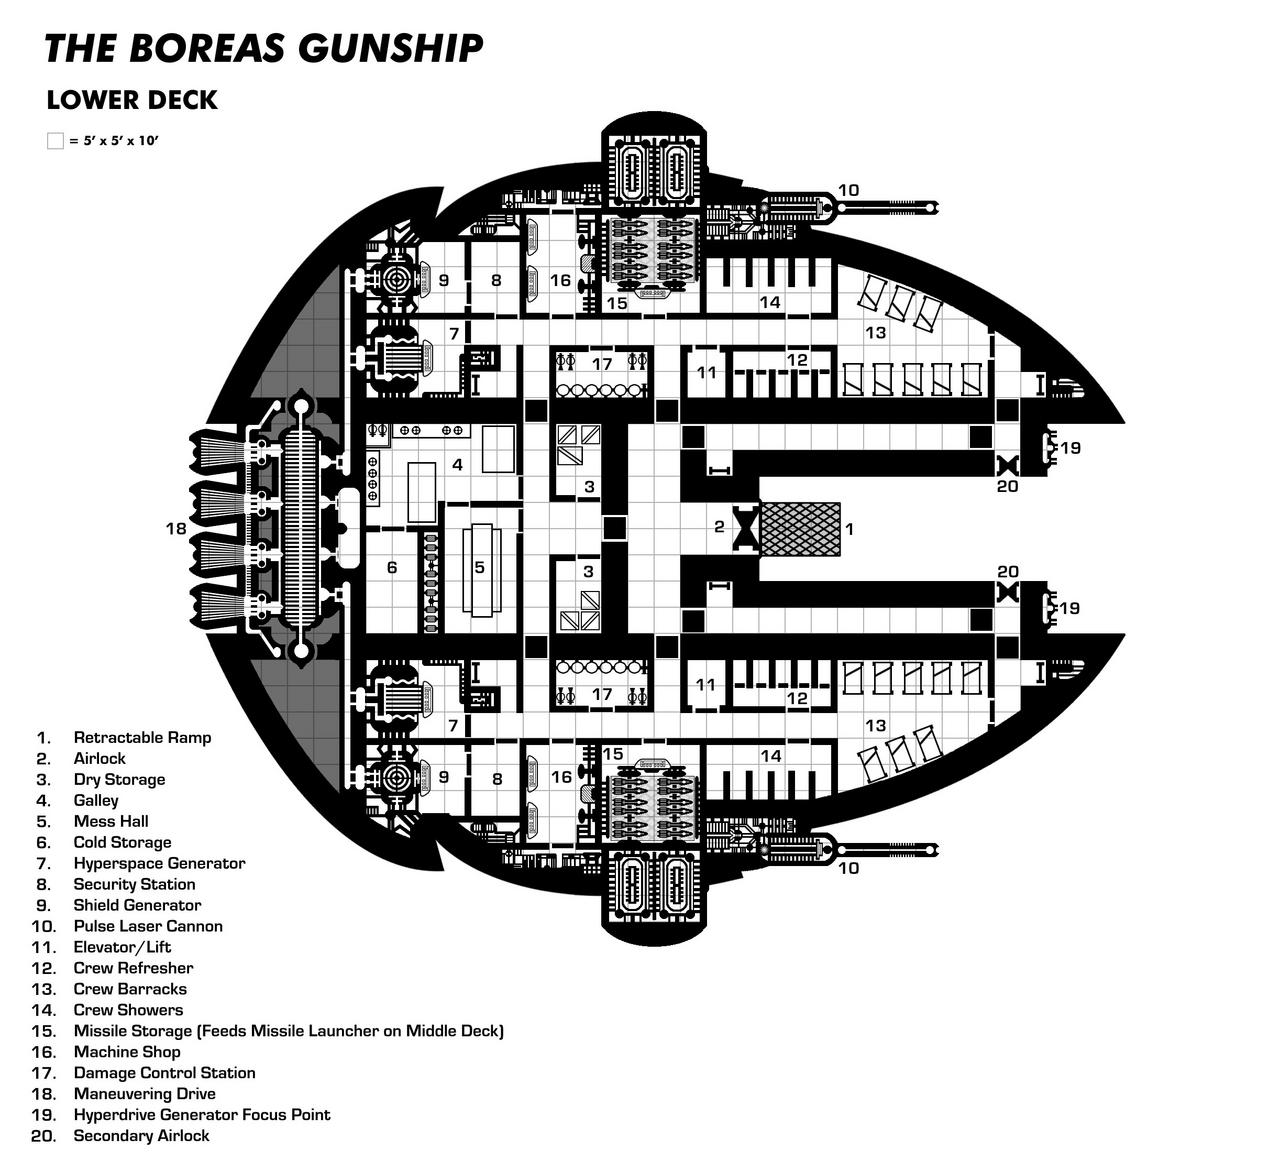 Boreas Lower Deck (Gun Ship)